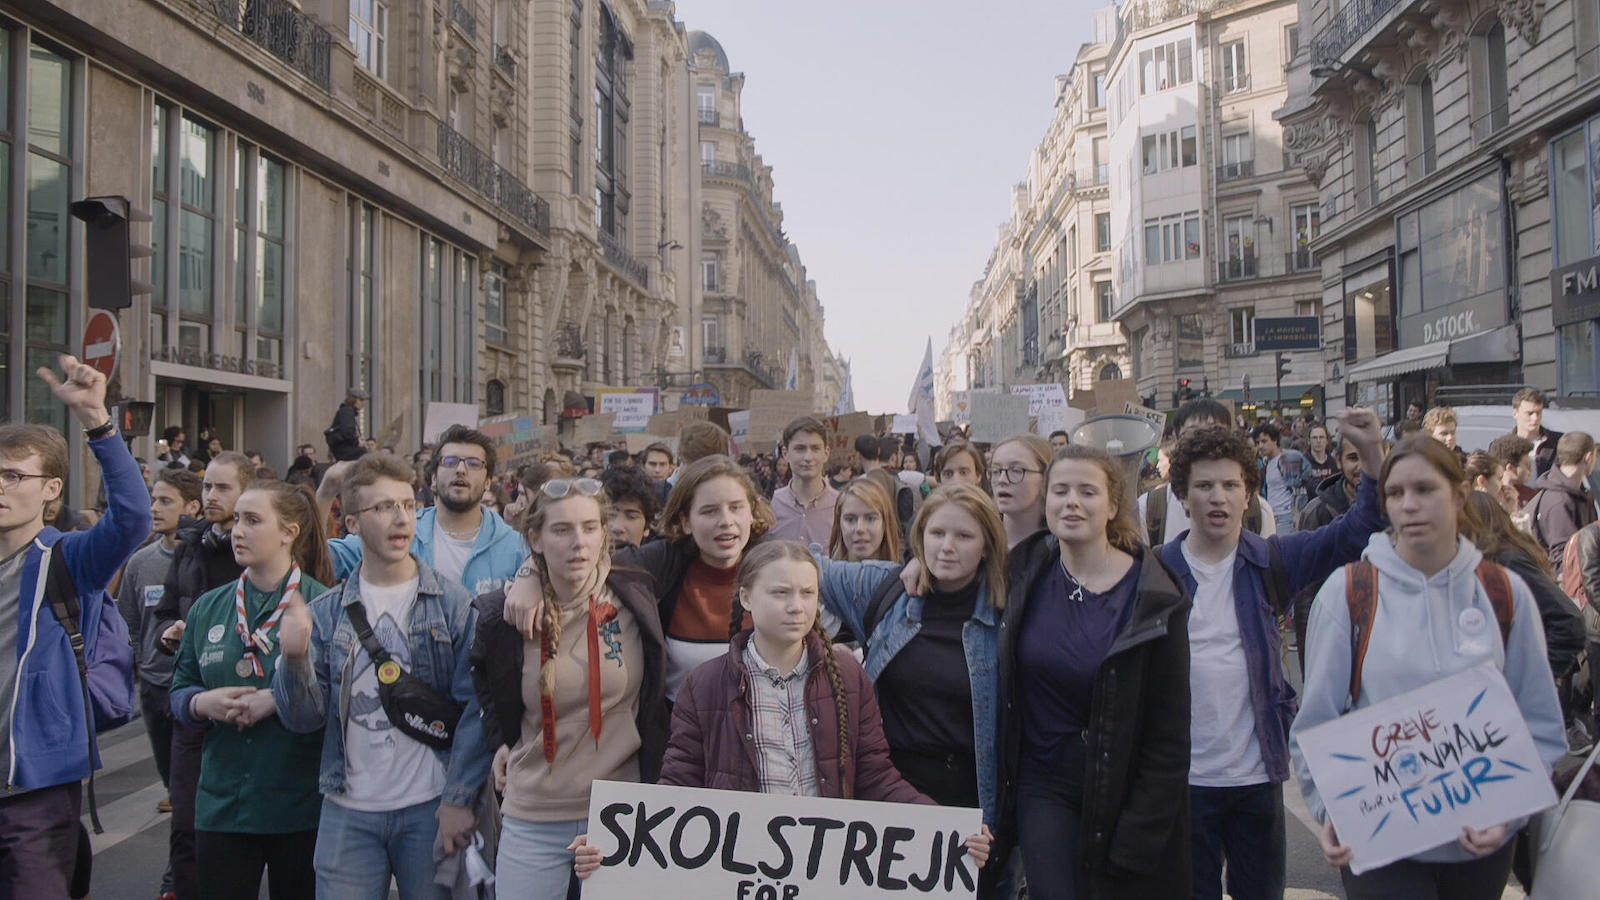 Greta Thunberg marches with fellow youth activists.